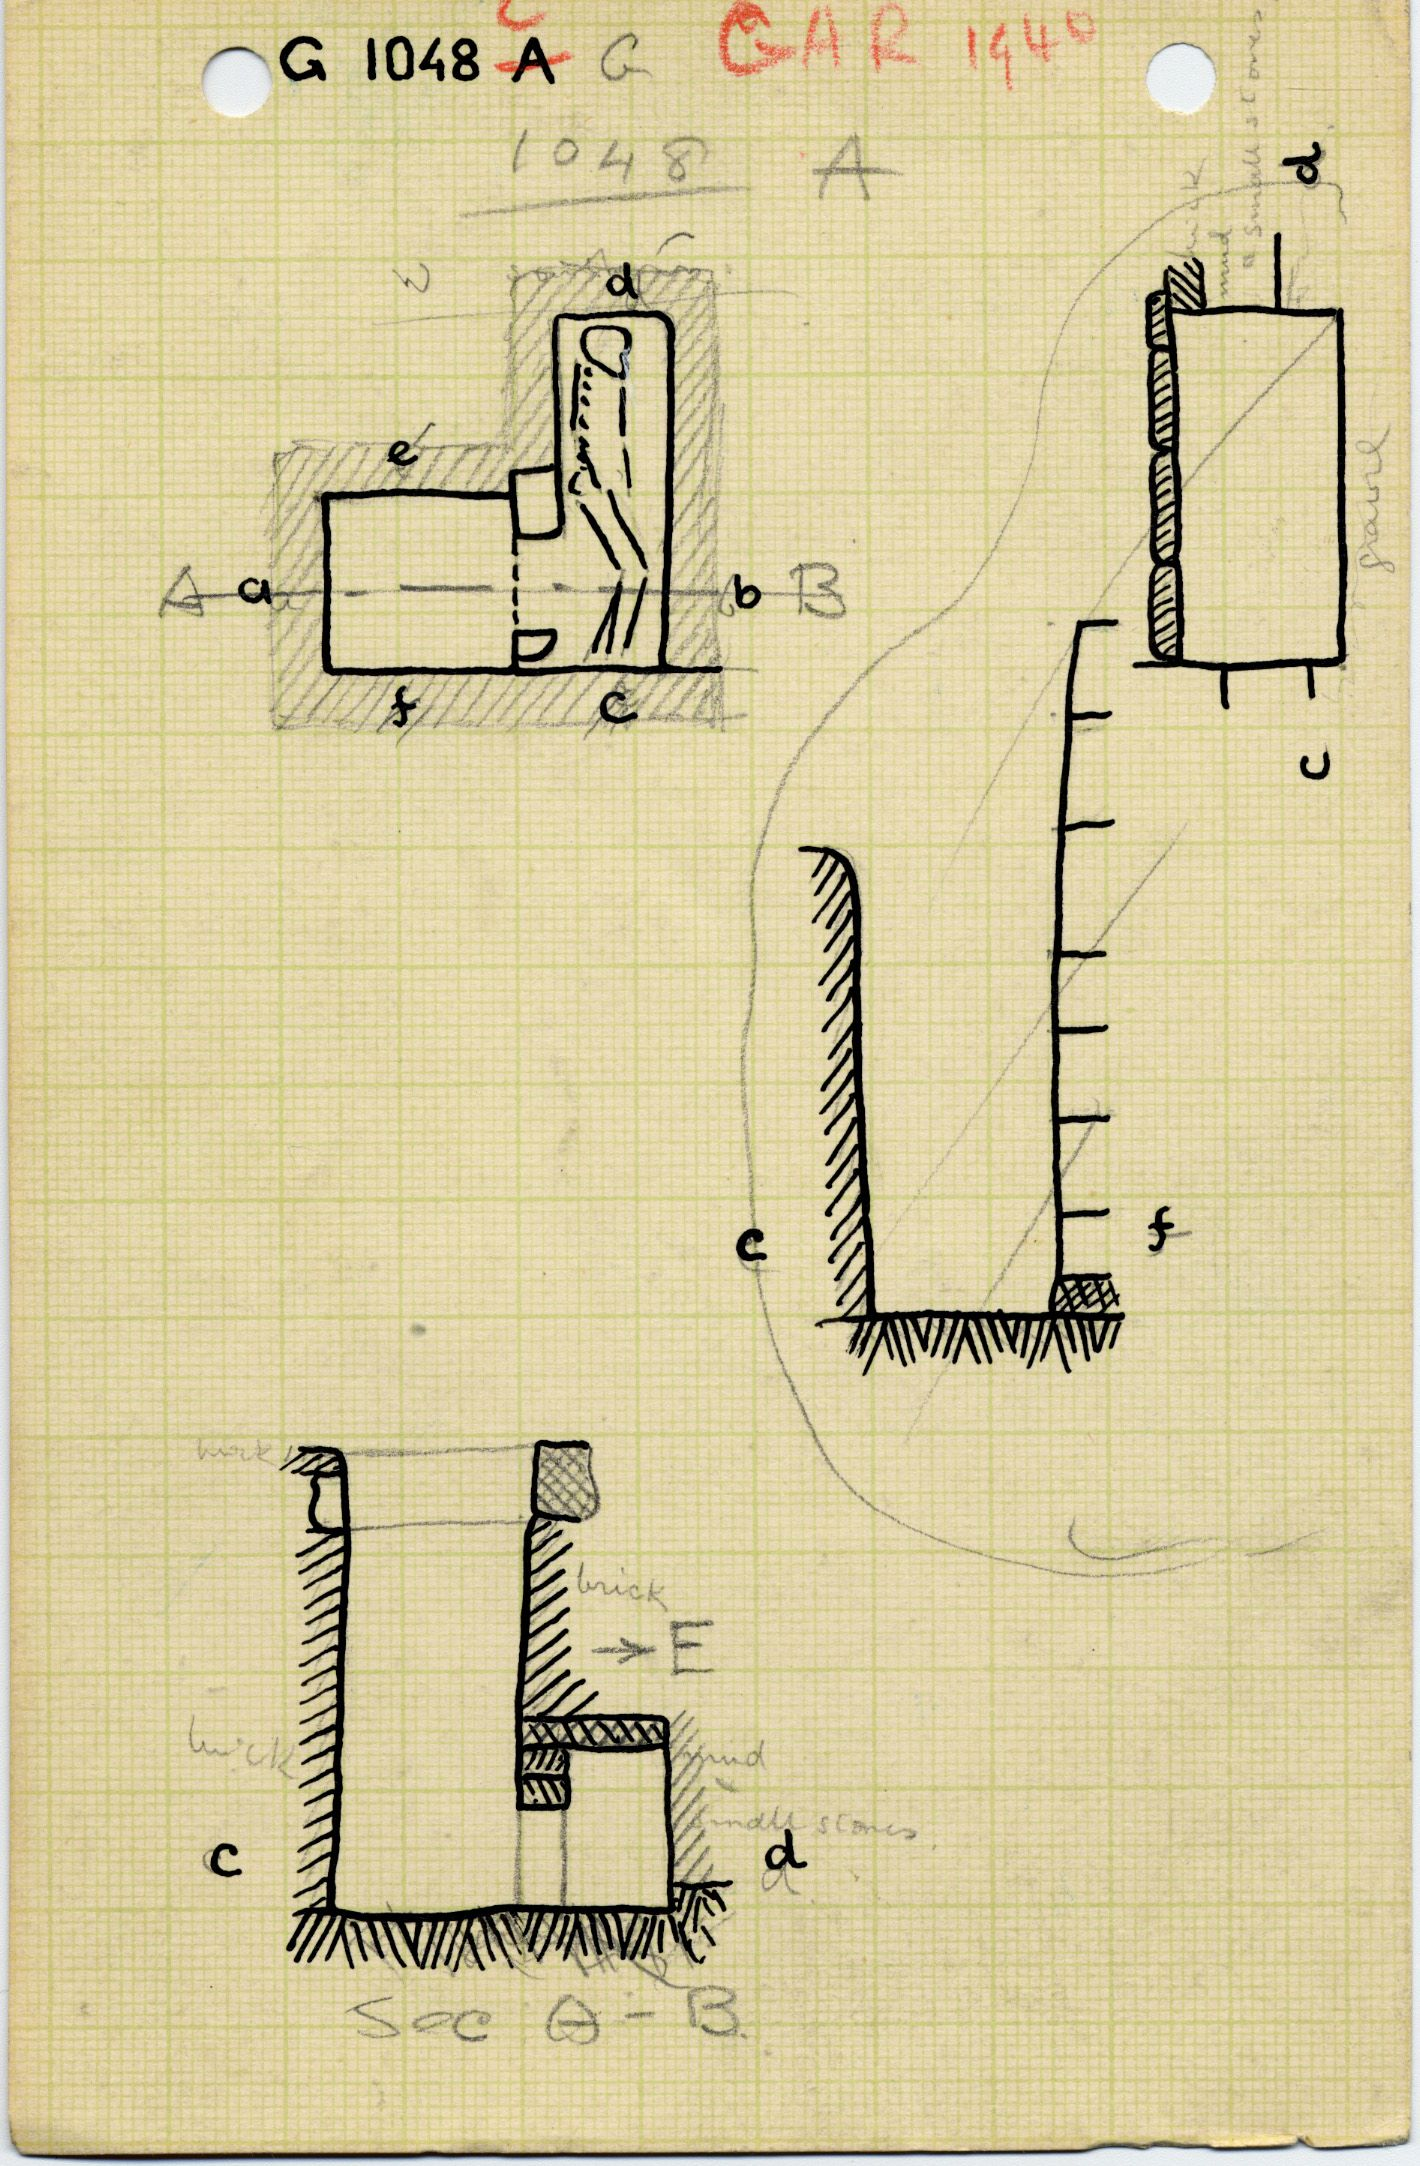 Maps and plans: G 1048, Shaft C